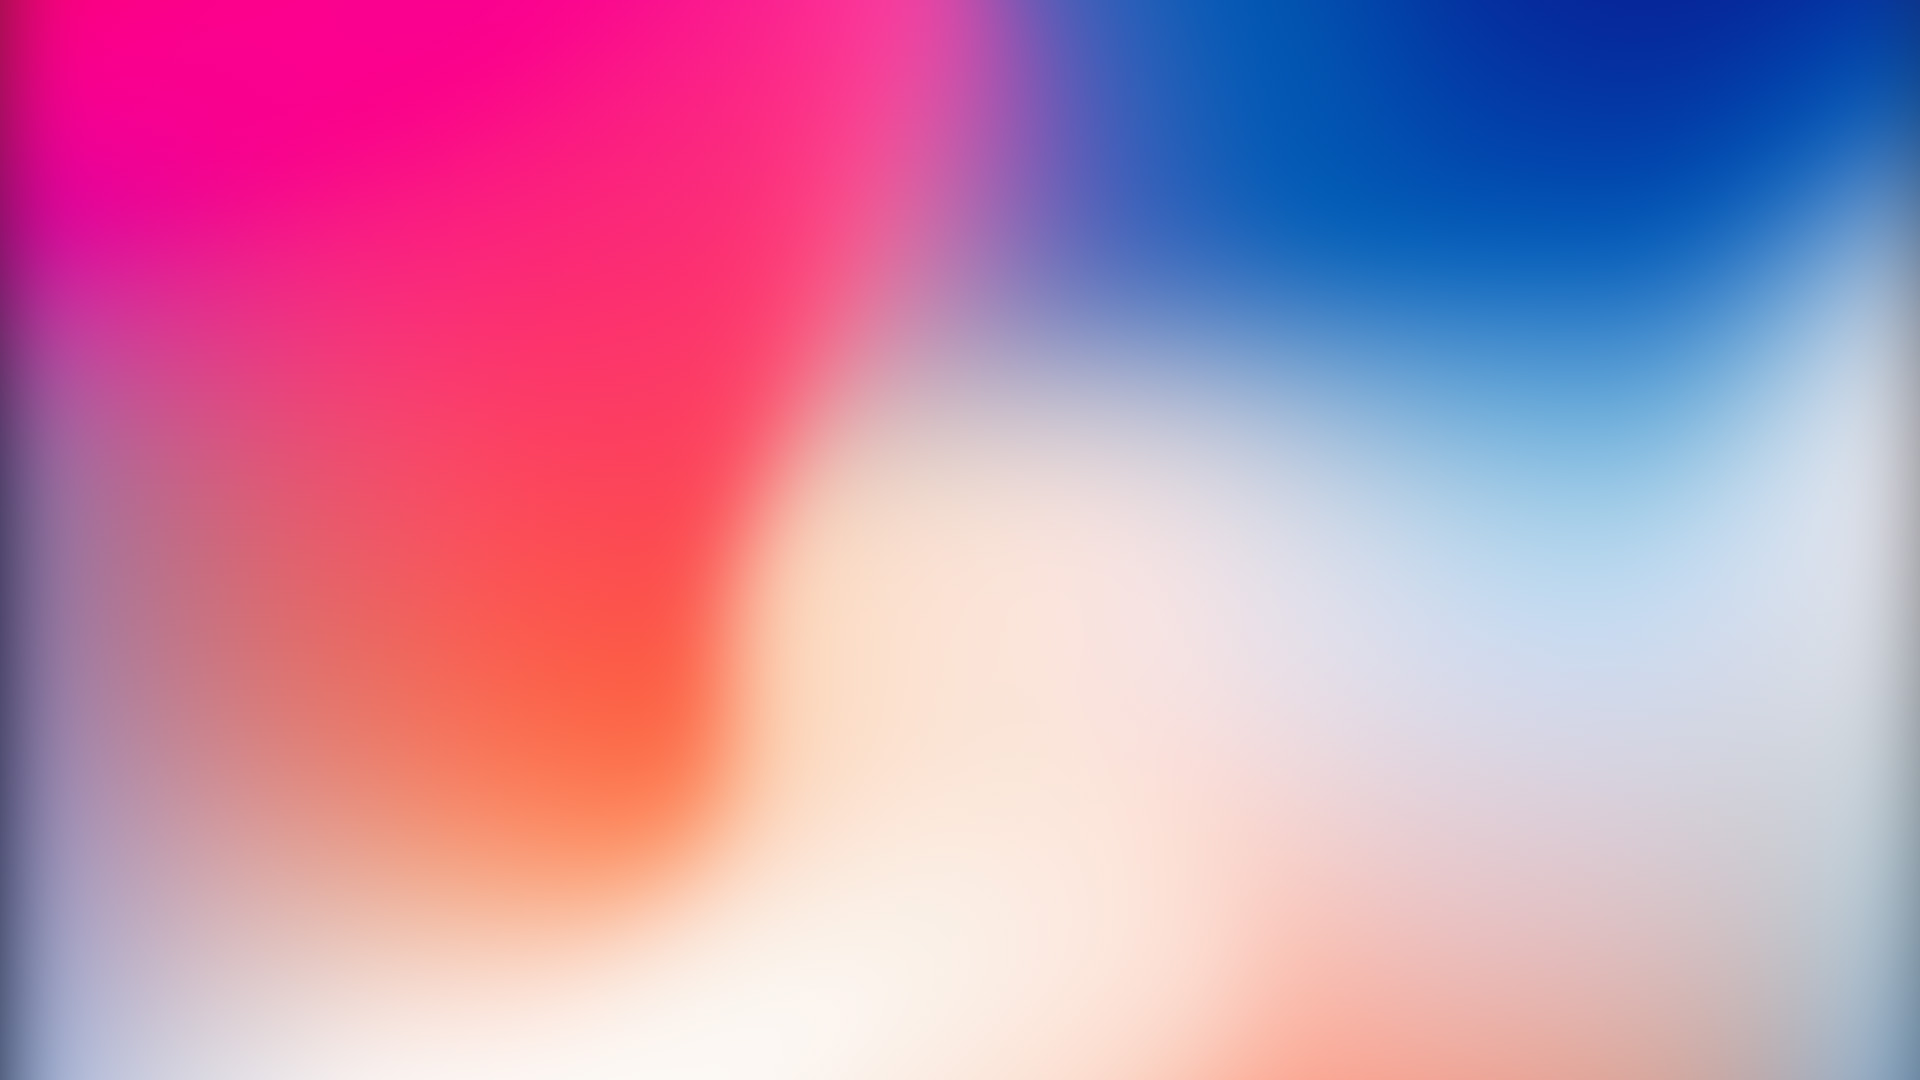 Sl90 Iphonex Apple Color Blur Gradation Wallpaper